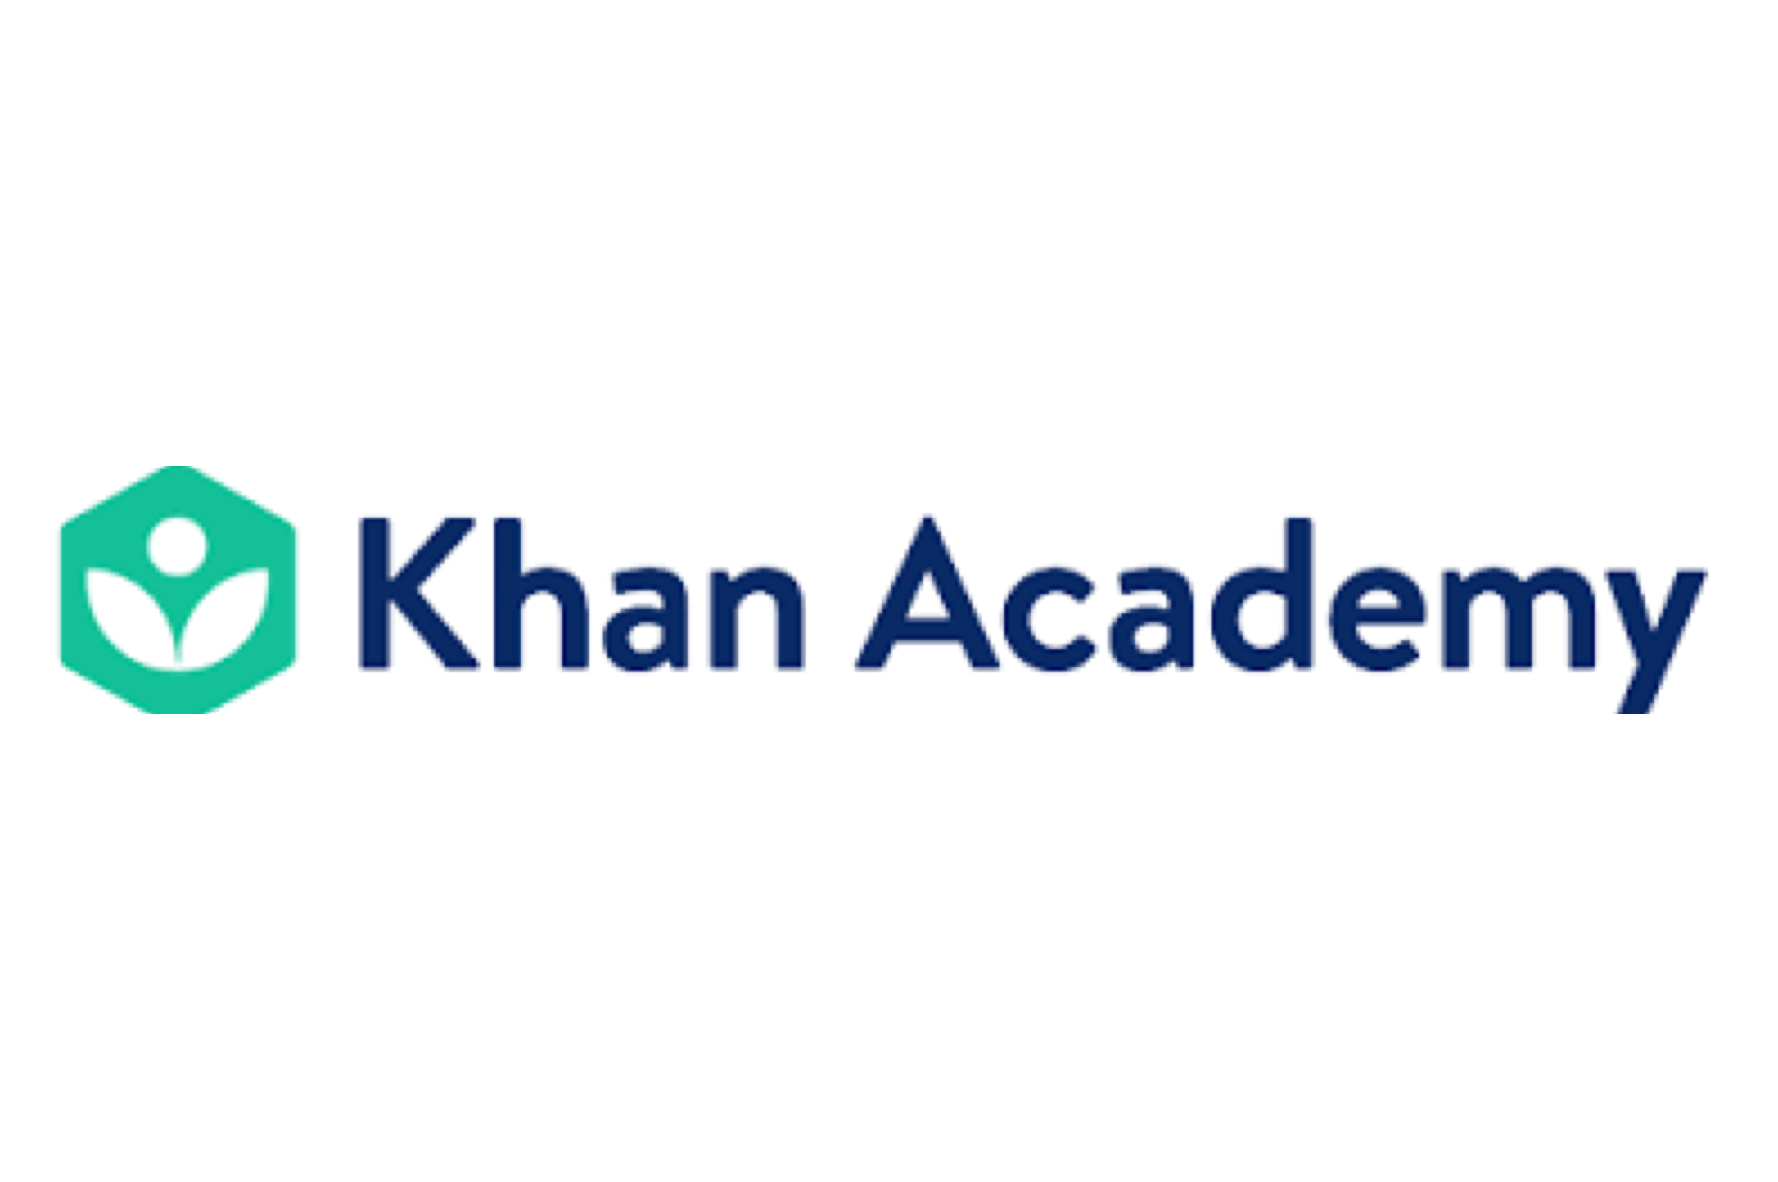 Khan Academy Announces New Mastery Learning Features